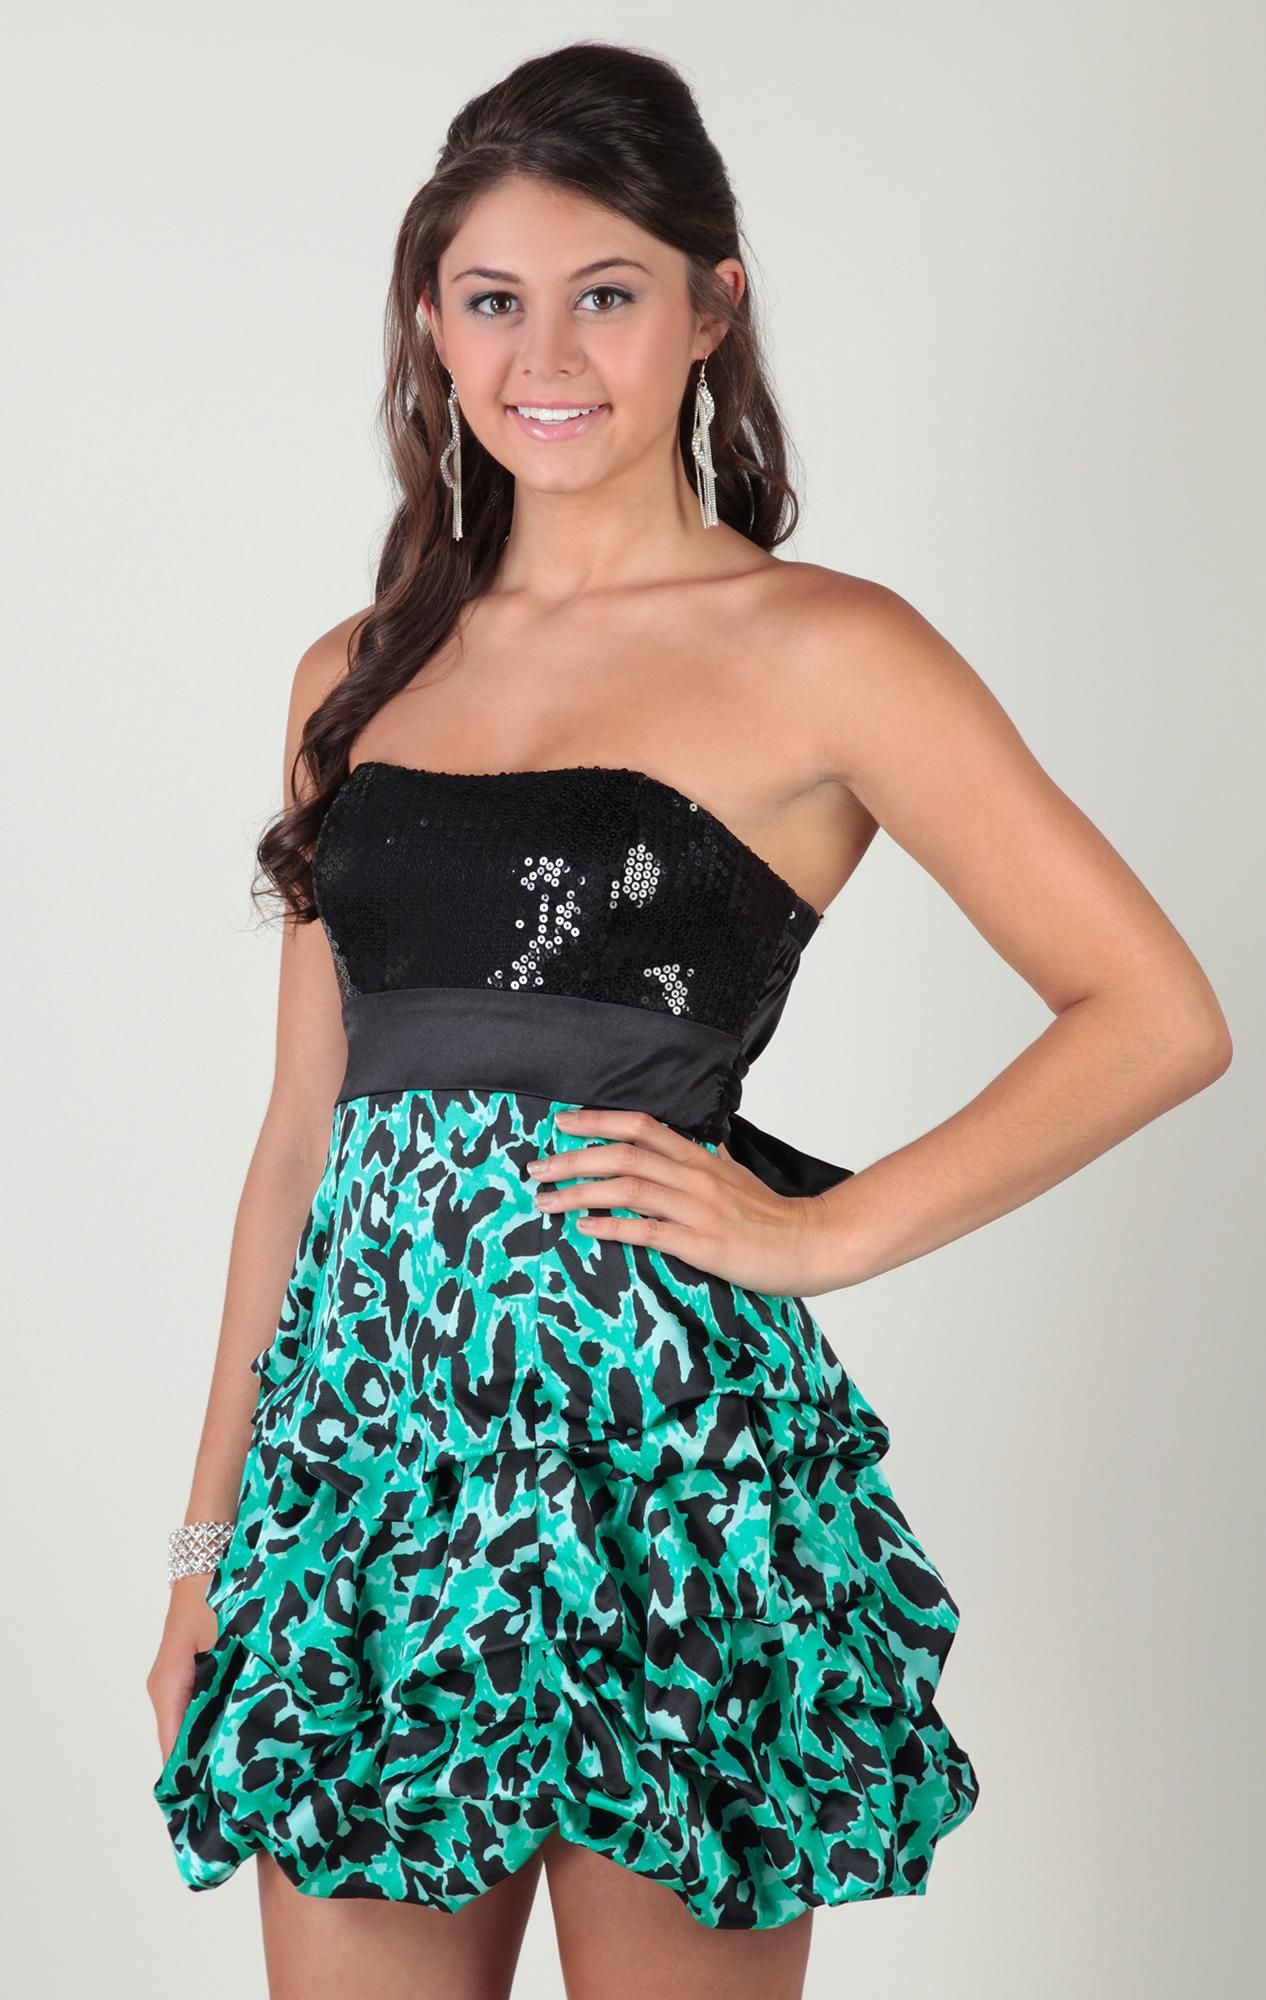 strapless dress with sequin bodice and cheetah print skirt ...